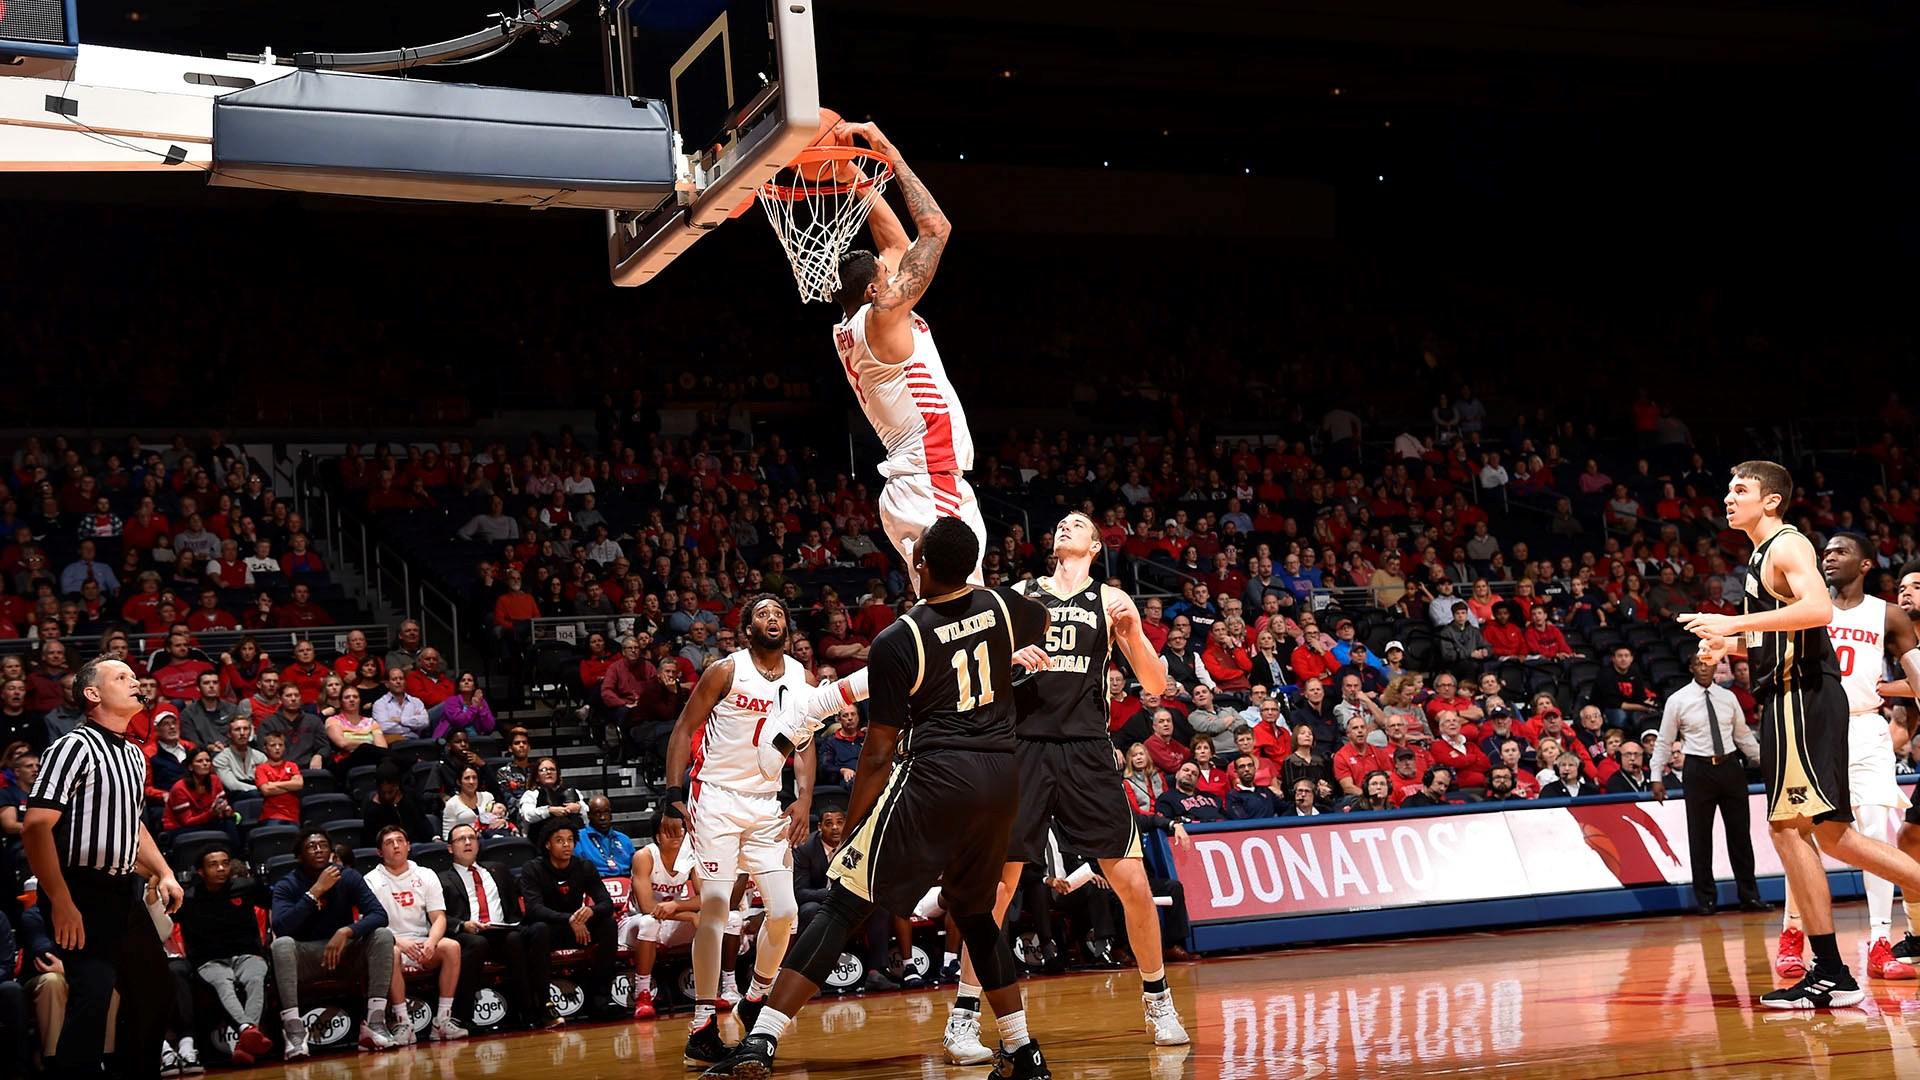 men's basketball - university of dayton athletics